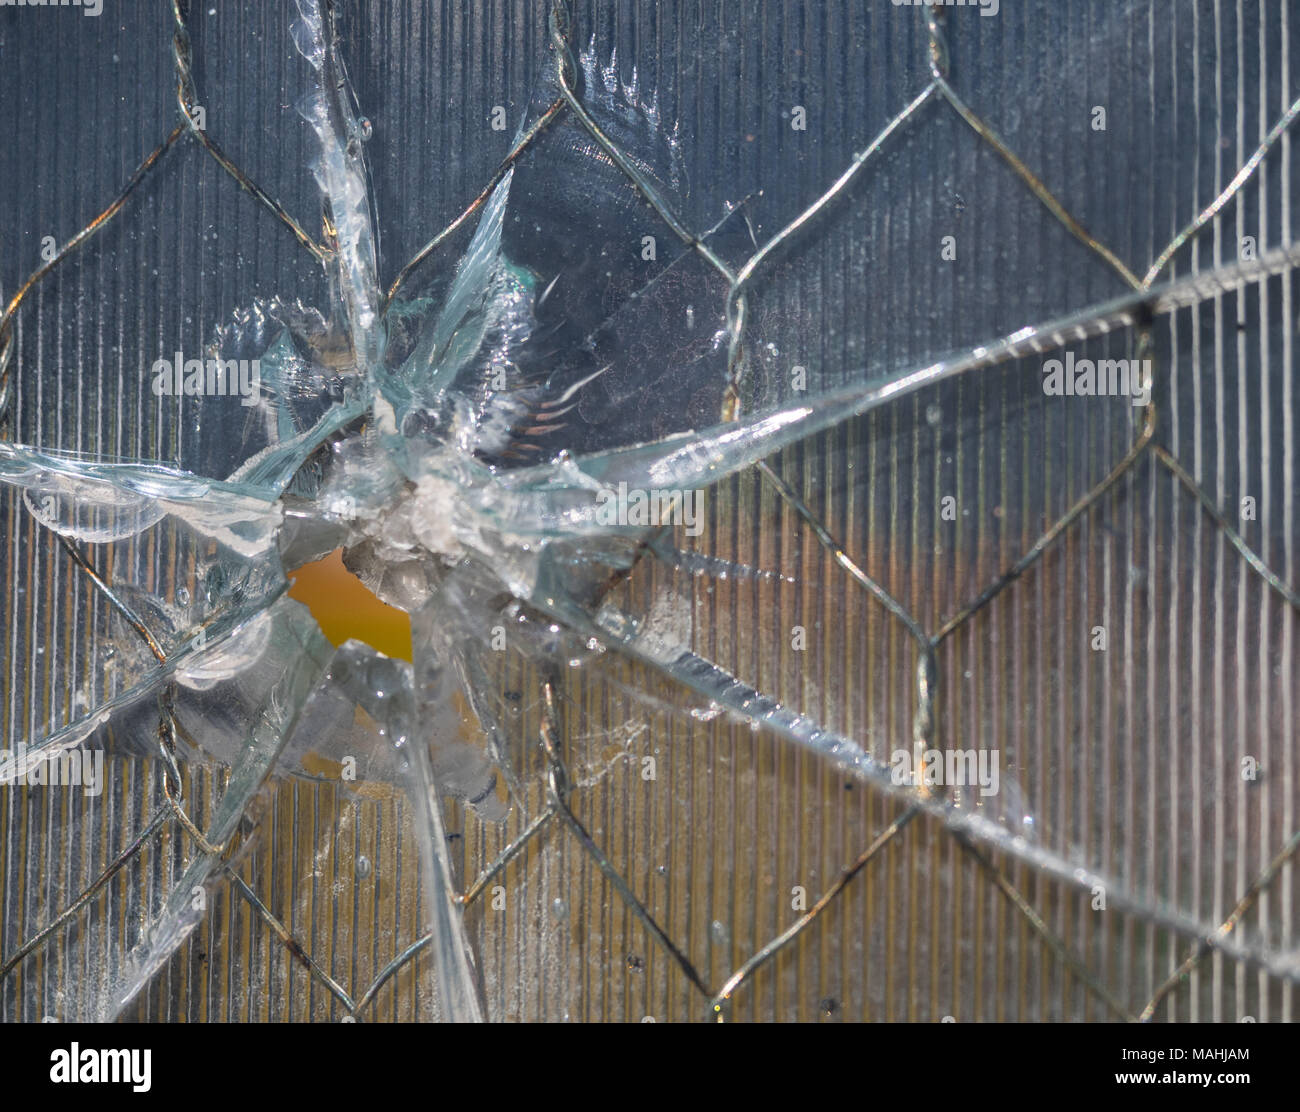 Close up of a bullet hole through wire mesh glass. The glass has ridges and the bullet hole caused rays of cracks in the window. - Stock Image